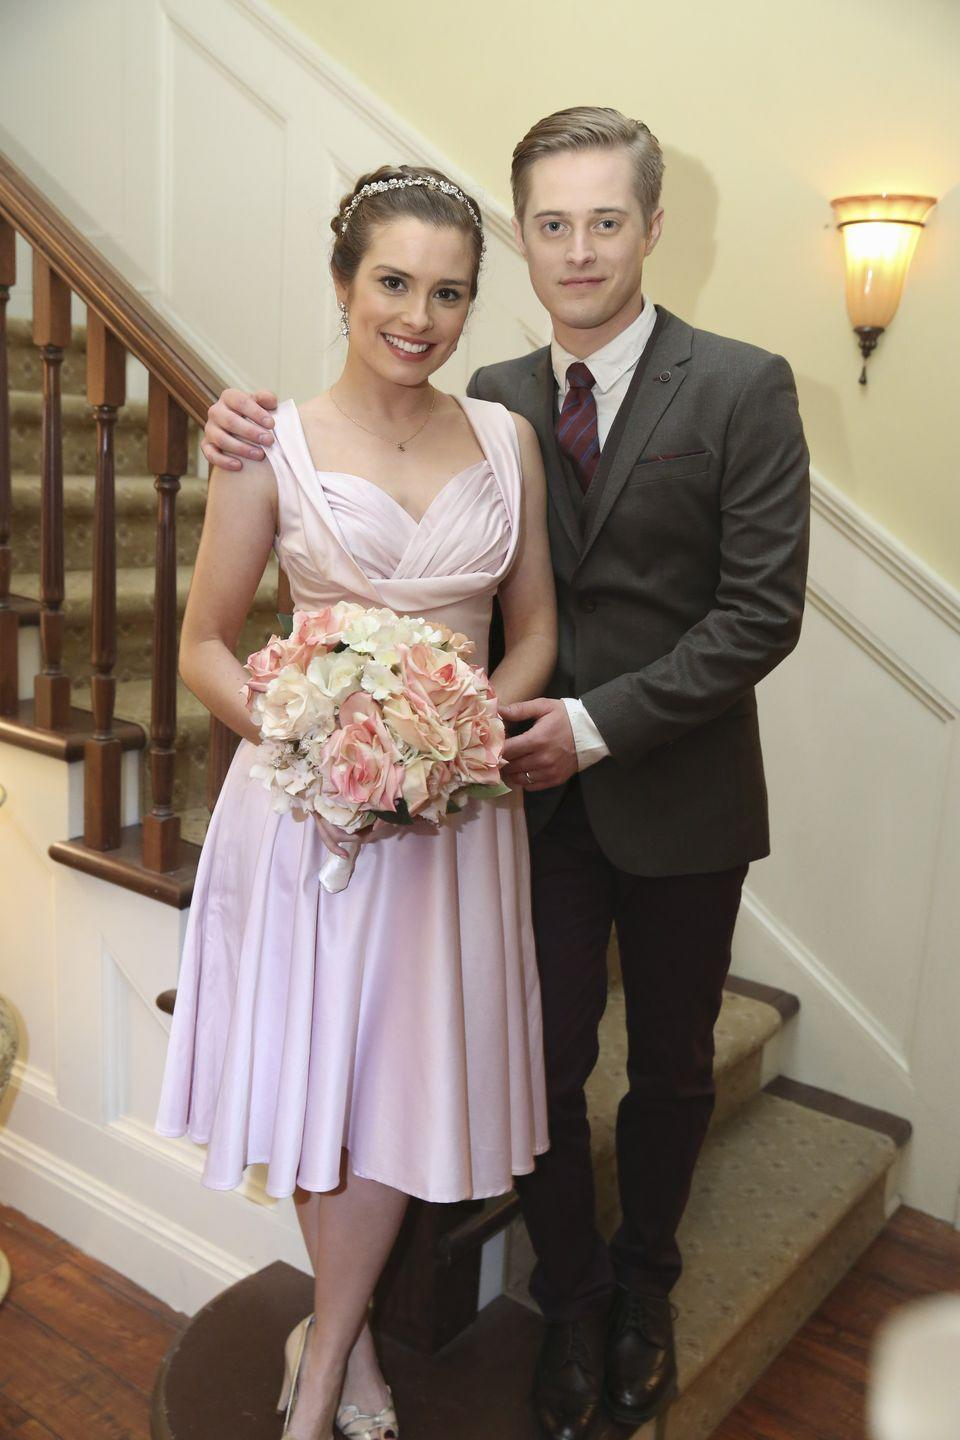 <p>For her surprise at-home wedding to Toby, Lily Summers kept her wedding look simple, opting for a blush tea-length dress and a crystal headpiece. Toby's burgundy tie matched perfectly! </p>